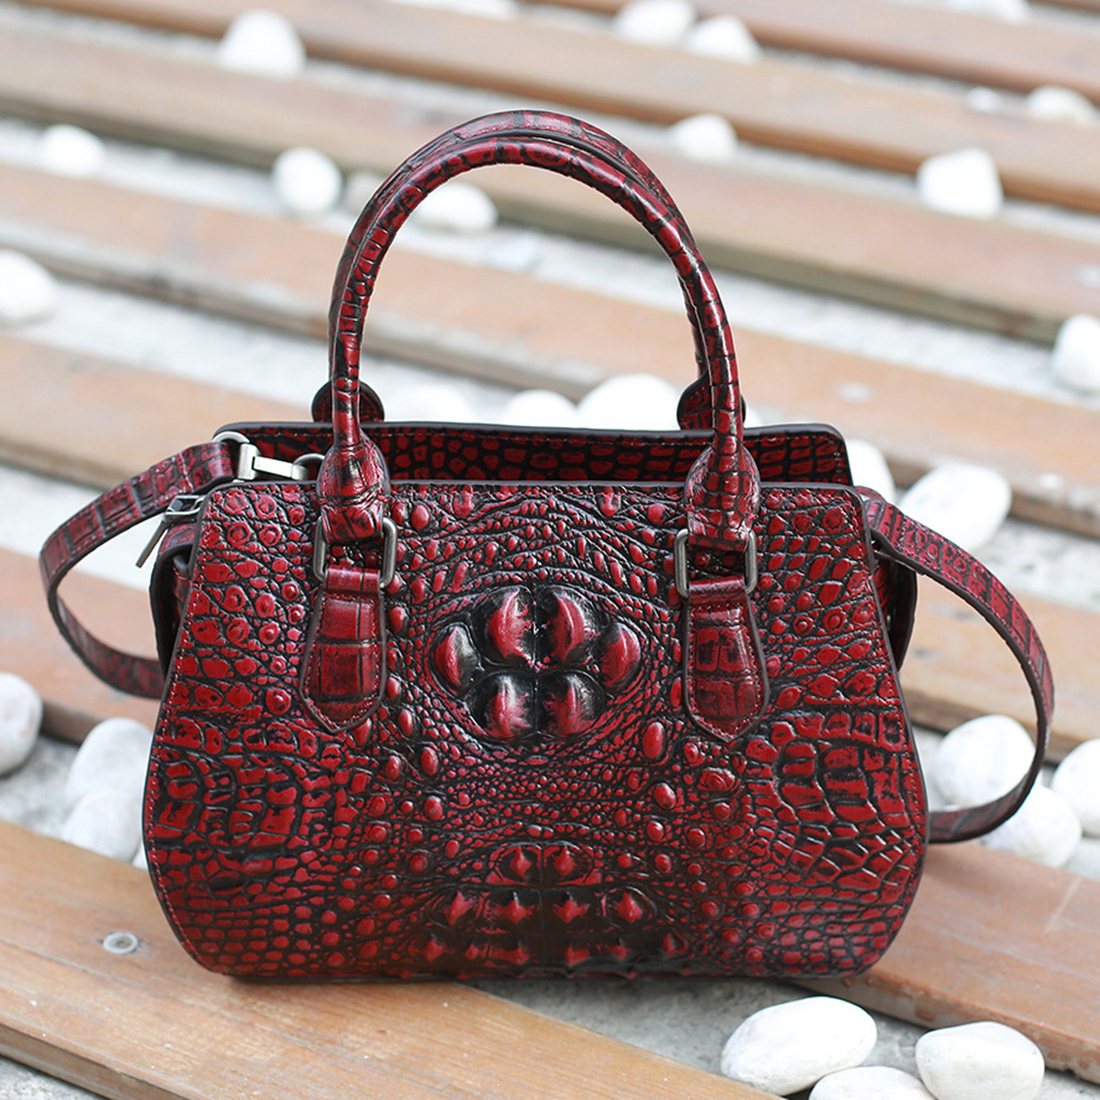 blue Vache Cuir red Top Flower Relief Poignée De tout Motif Messager Main Brown À Crocodile Véritable Rétro En Bandoulière Haute Fourre Femmes Peau coffee Sac Qualité Vraie EwqCSS